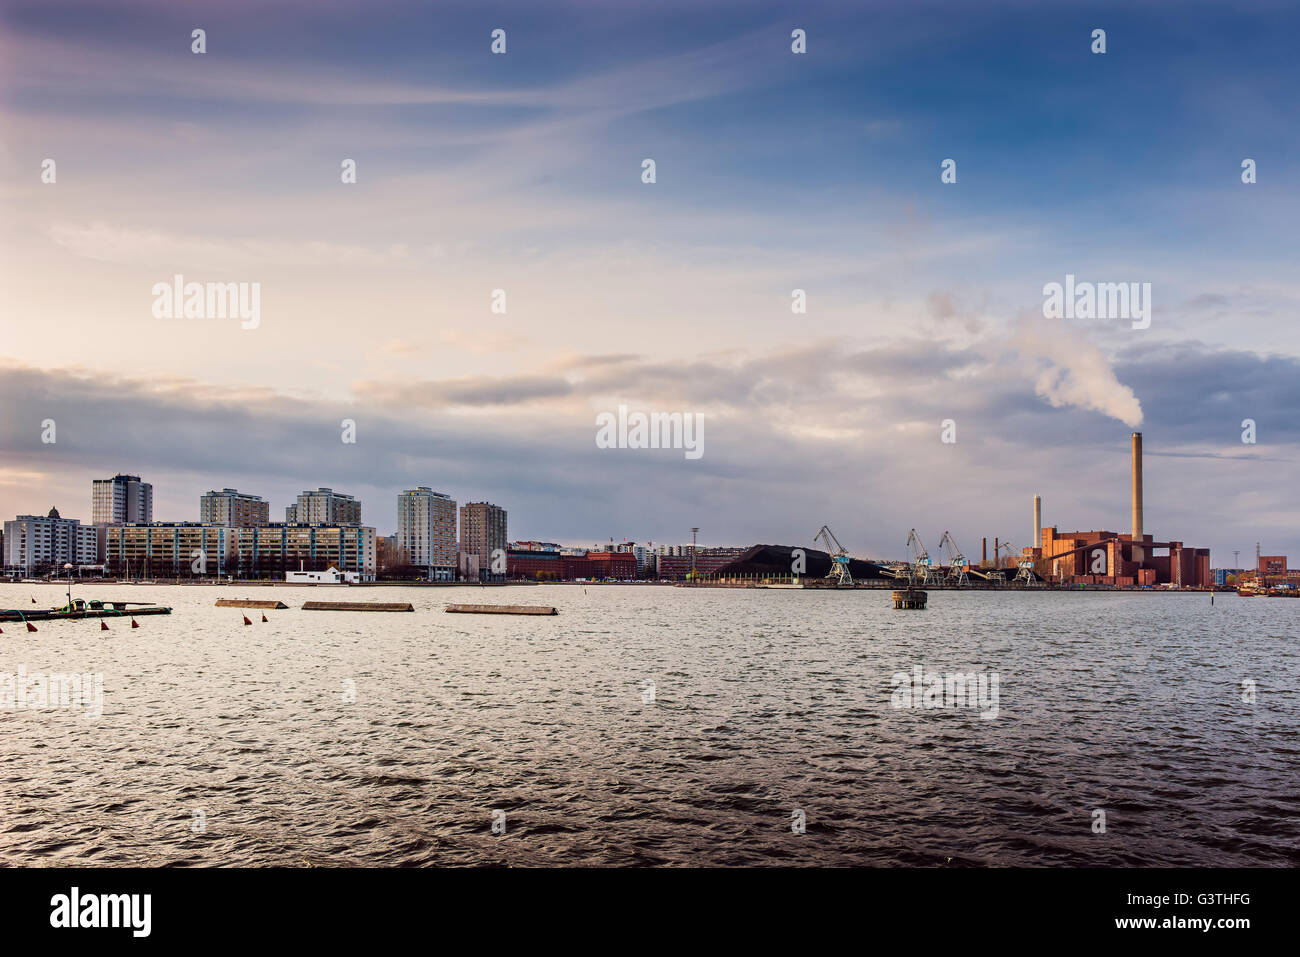 Finland, Helsinki, View of commercial dock - Stock Image